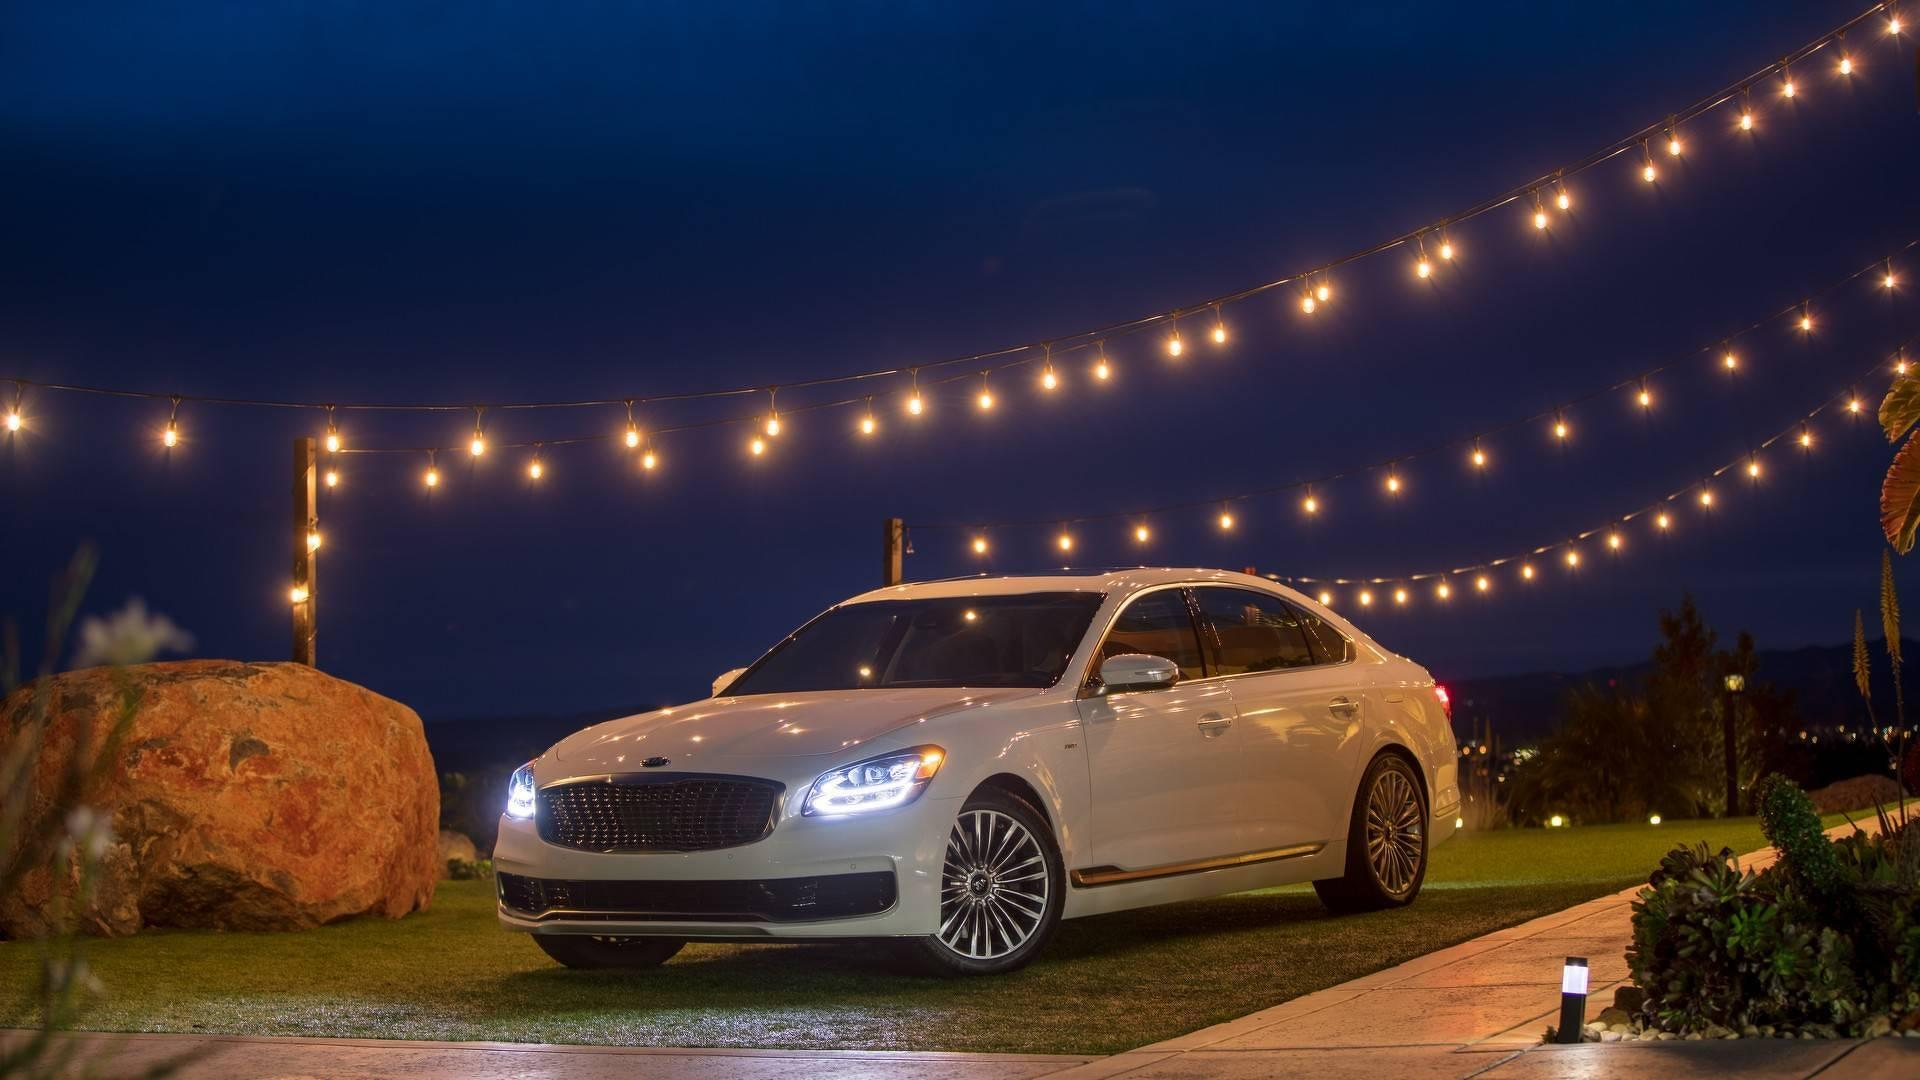 <p>The premium four-door just looks so boring. It's a standard three-box sedan and not much more. With the Stinger's biturbo V6 and all-wheel-drive system, the model probably drives great, but as a buyer it would be hard for me to get over how unexciting the exterior is.</p> <p><em>– Chris Bruce</em></p>